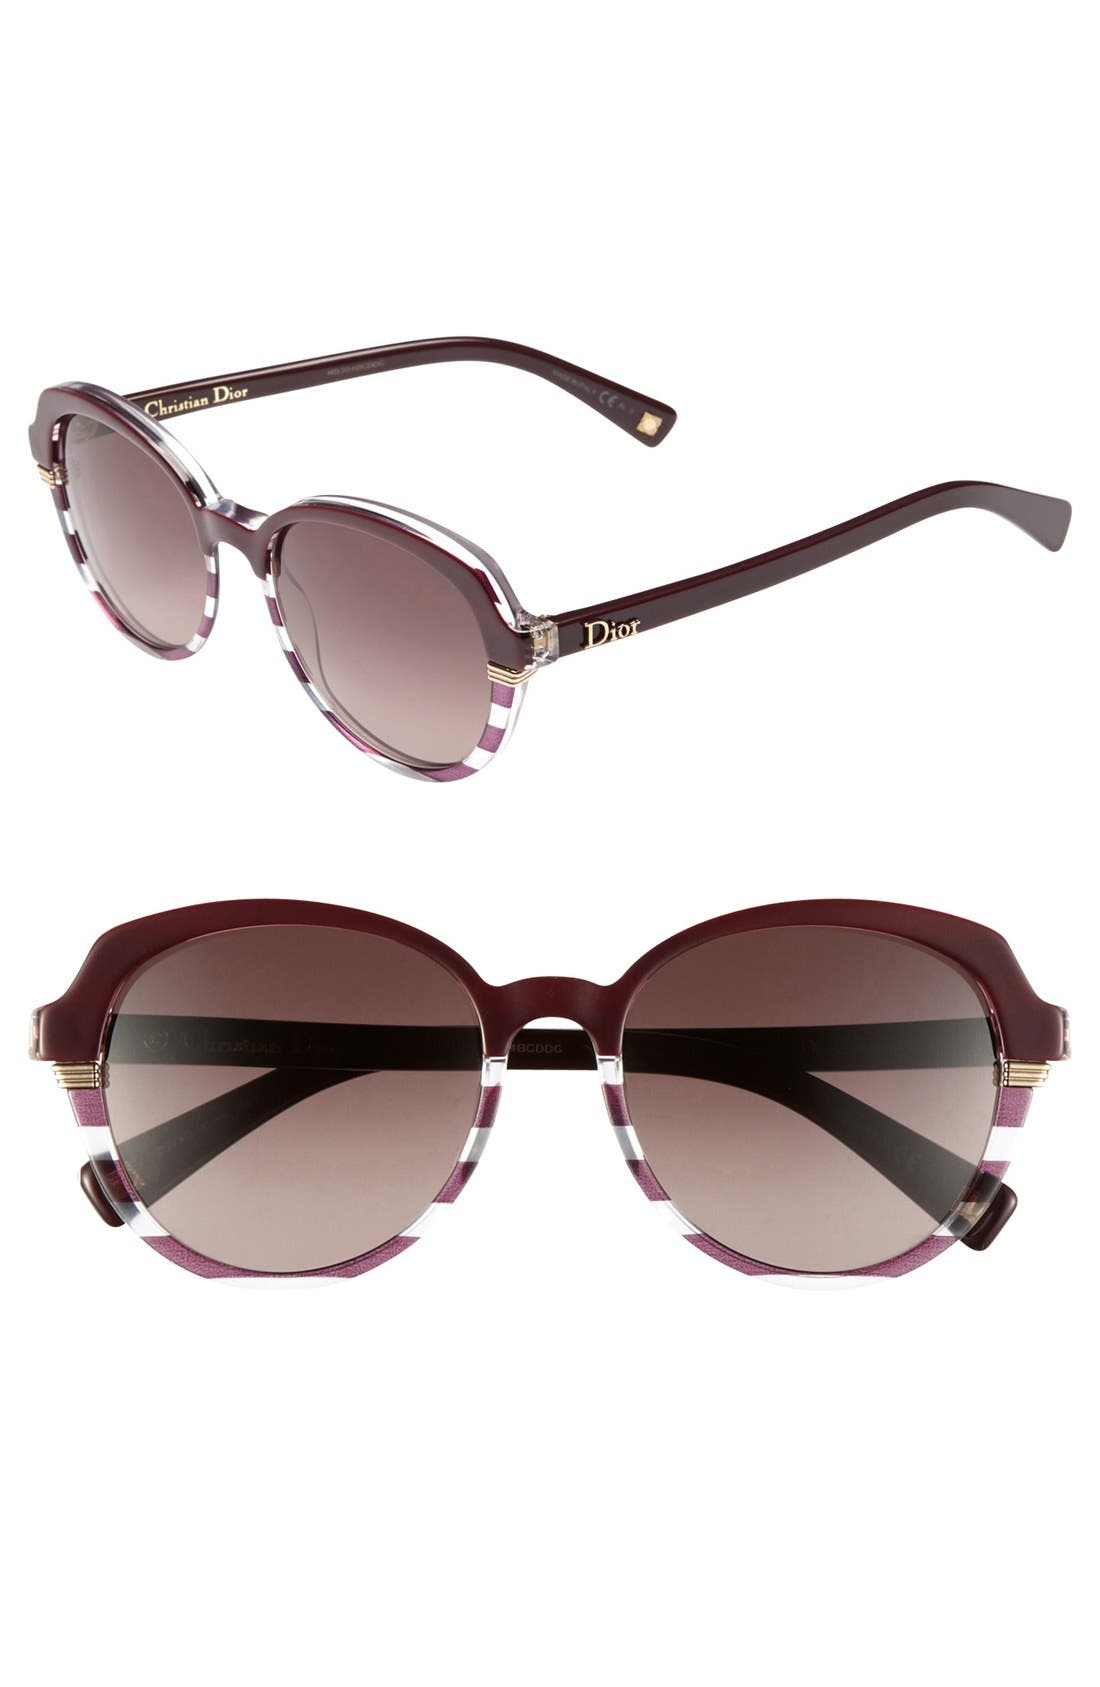 Alternate Image 1 Selected - Dior 'Croisette 3' Retro Sunglasses